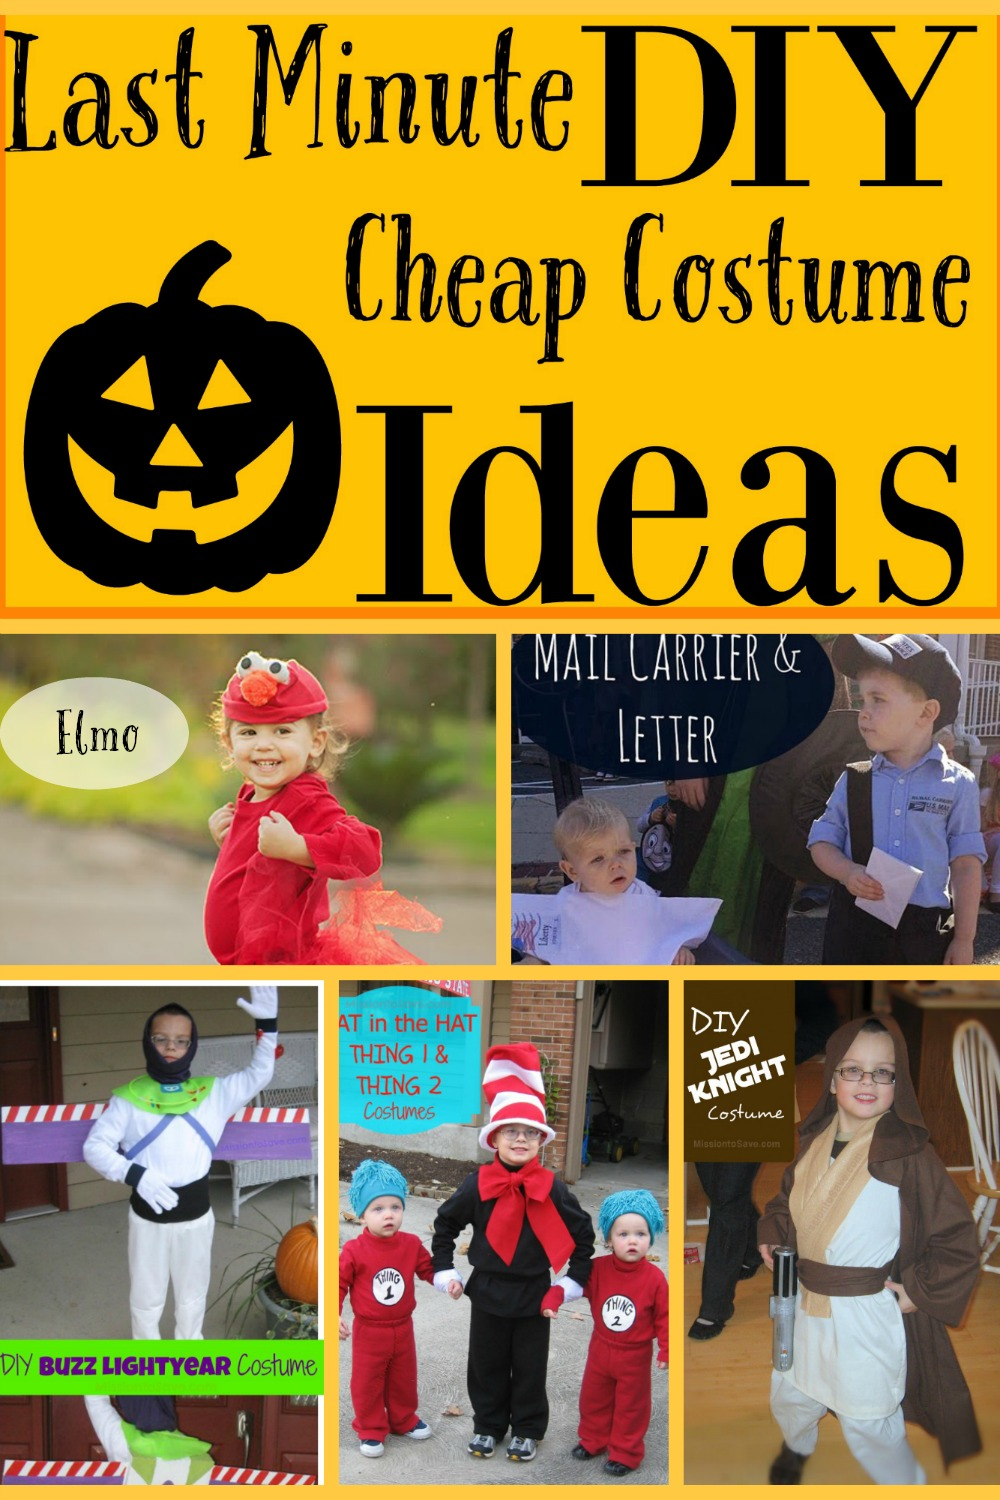 Last minute homemade halloween costumes ideas for adults for Designhotel last minute